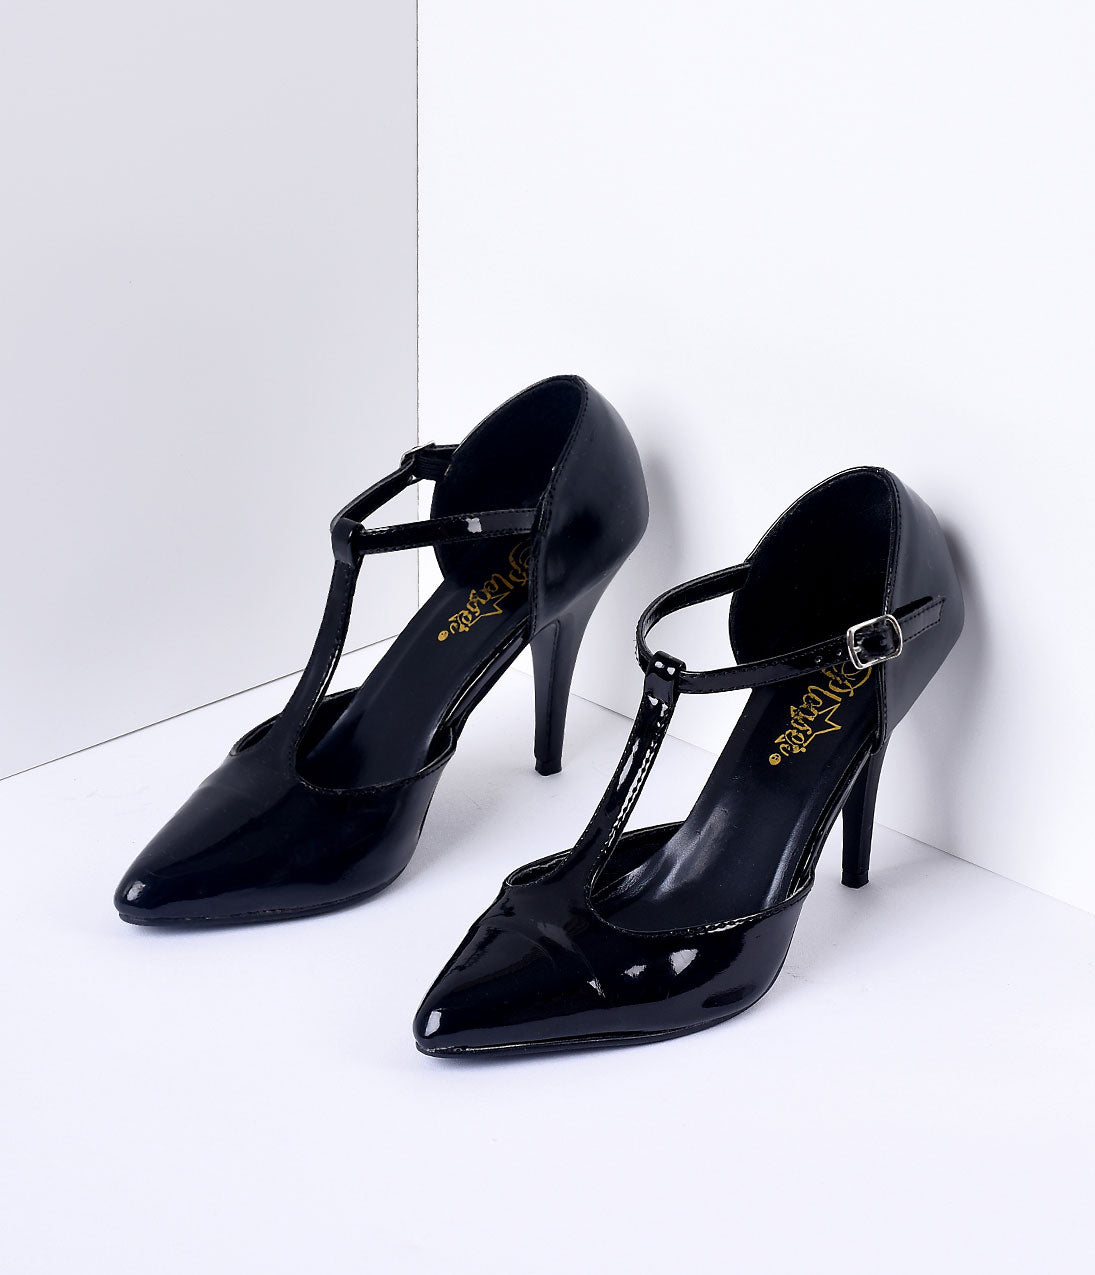 1950s Fashion History: Women's Clothing 1920S Style Black T-Strap Heels $68.00 AT vintagedancer.com